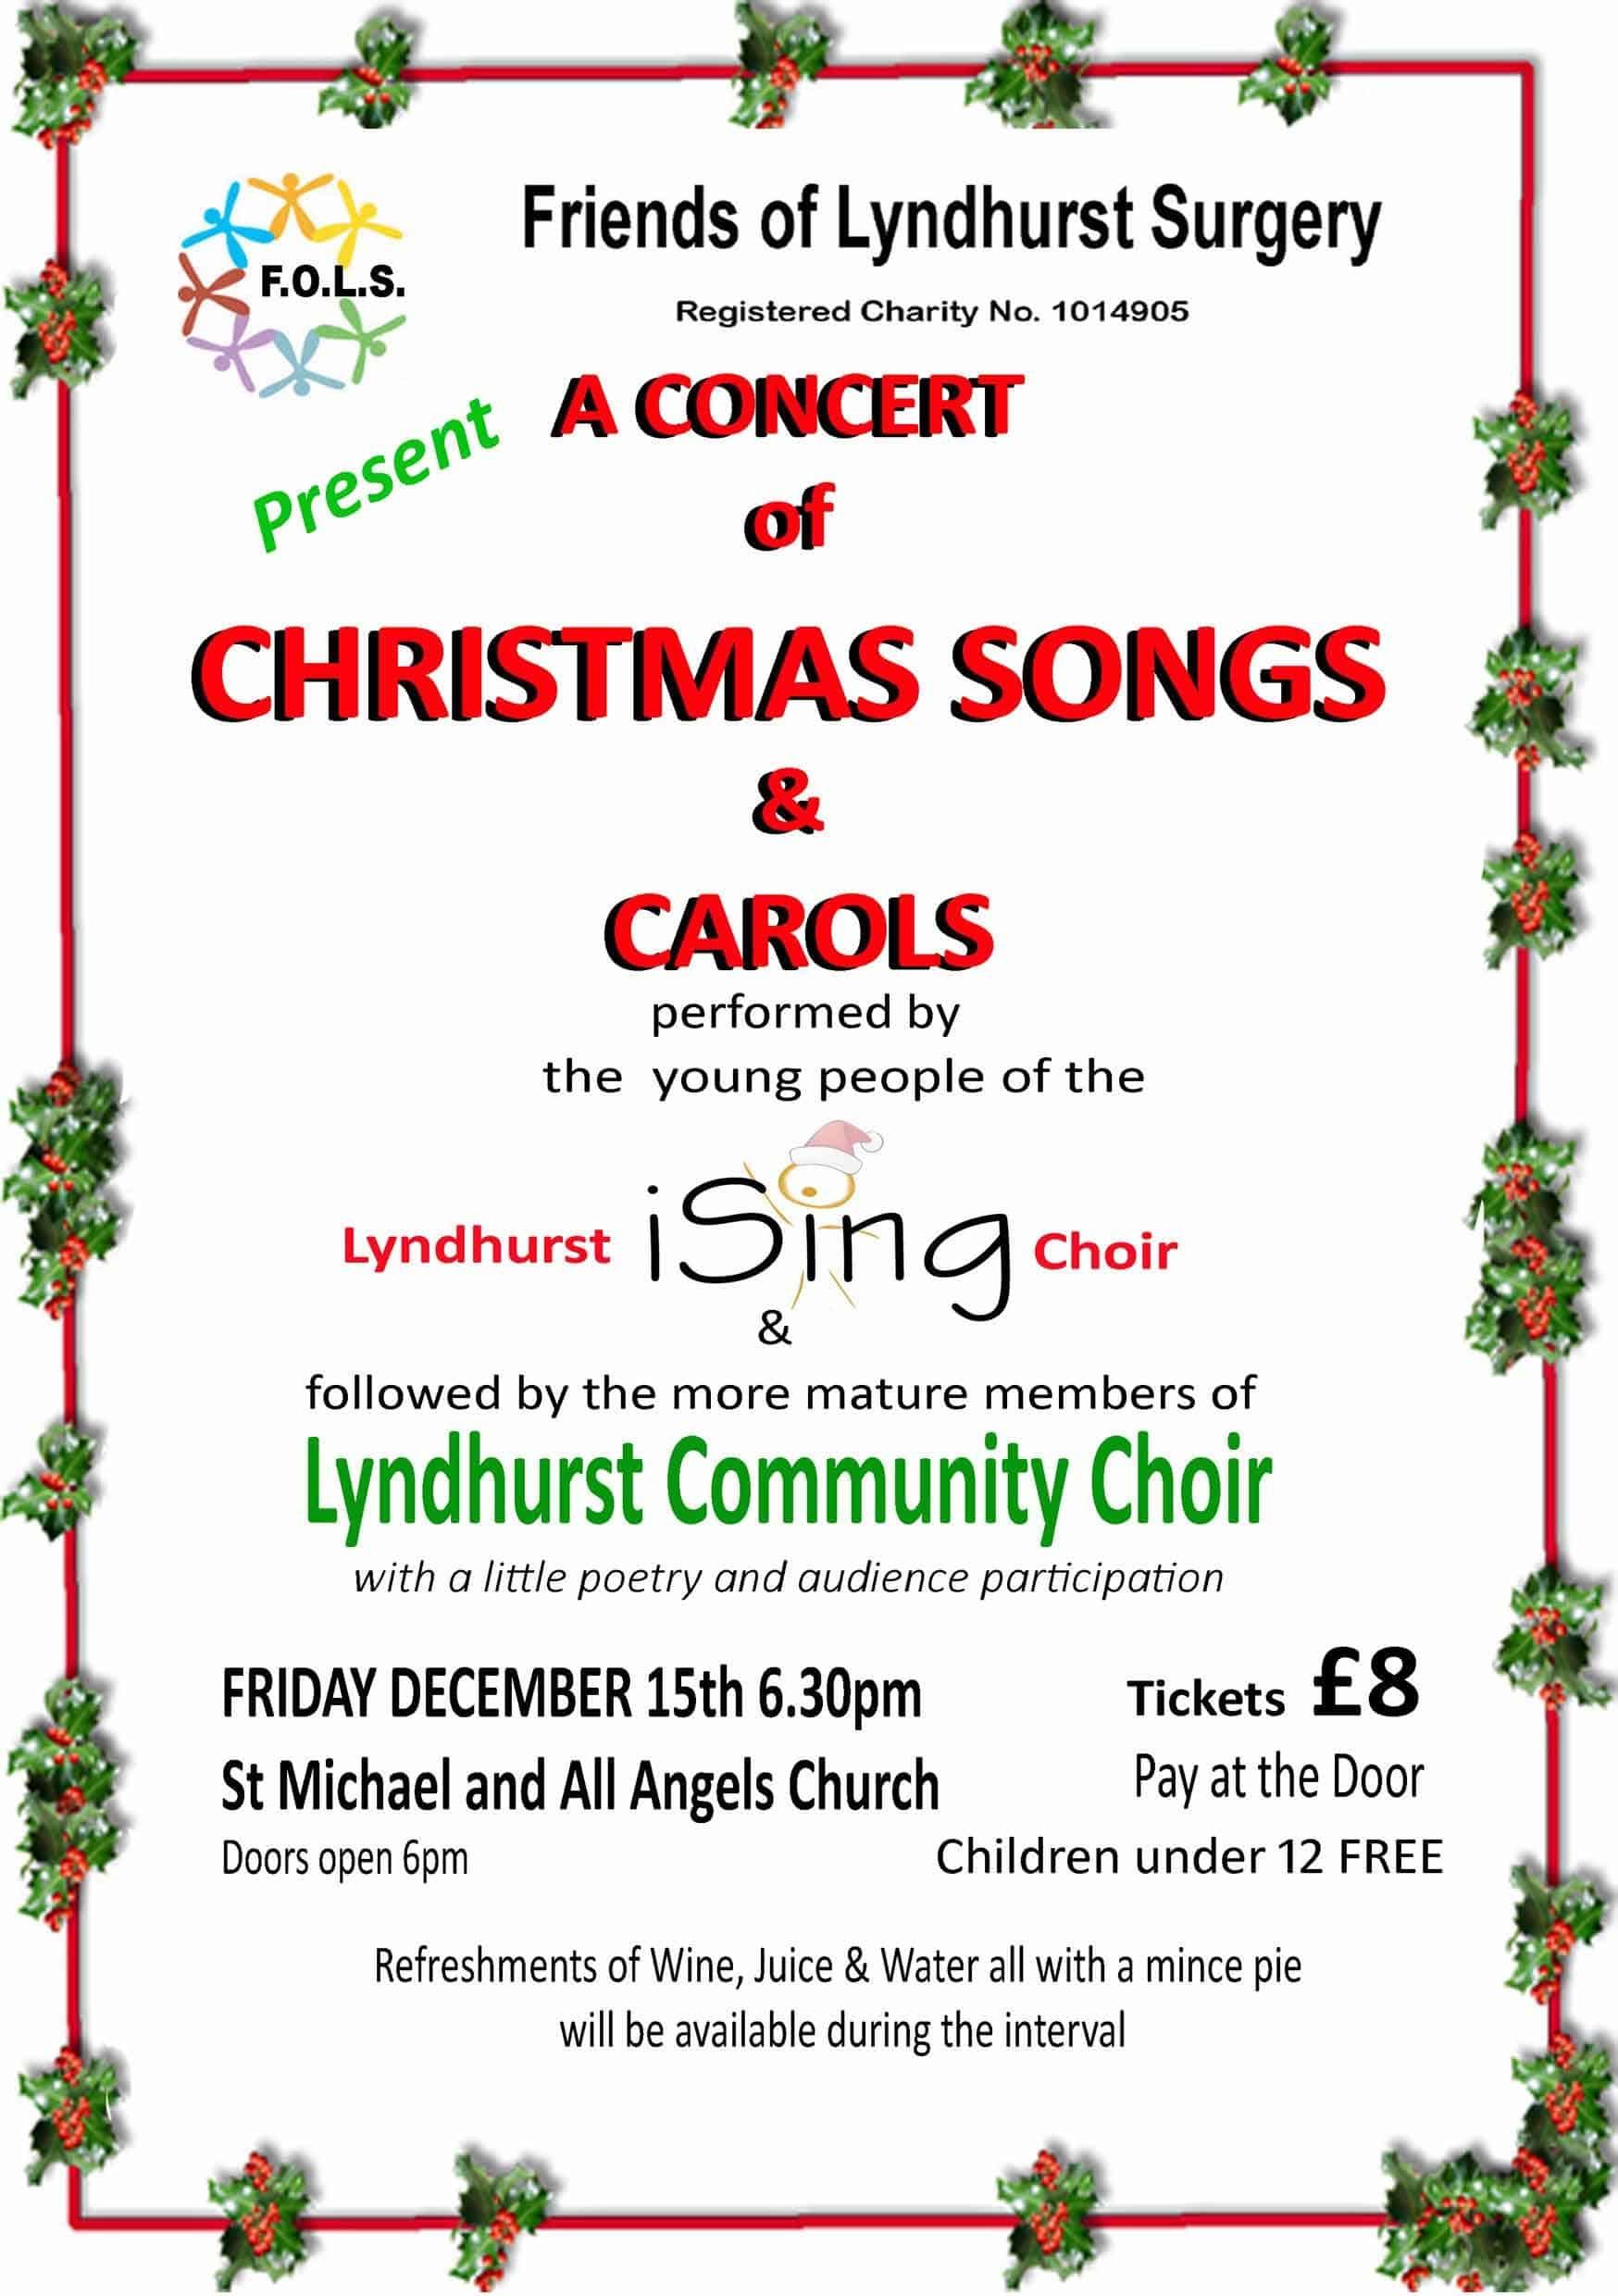 A Concert of Christmas Songs & Carols